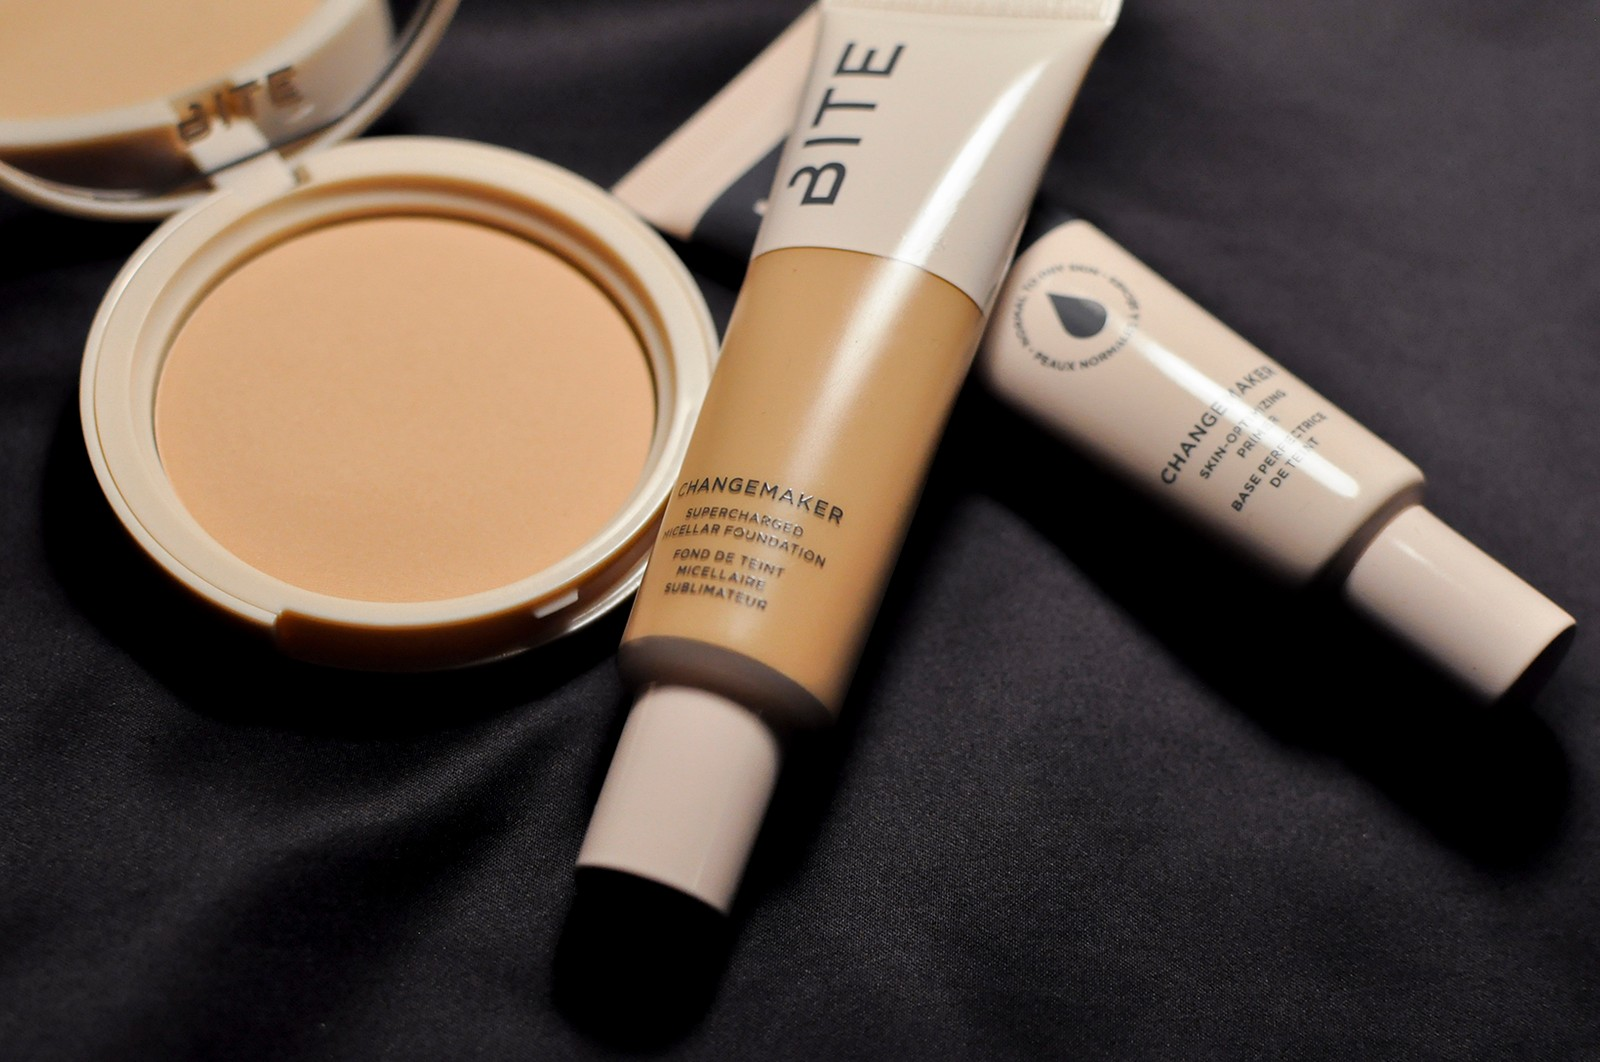 BITE Beauty Changemaker Supercharged Micellar Foundation Skin-Optimizing Primer Flexible Coverage Pressed Powder